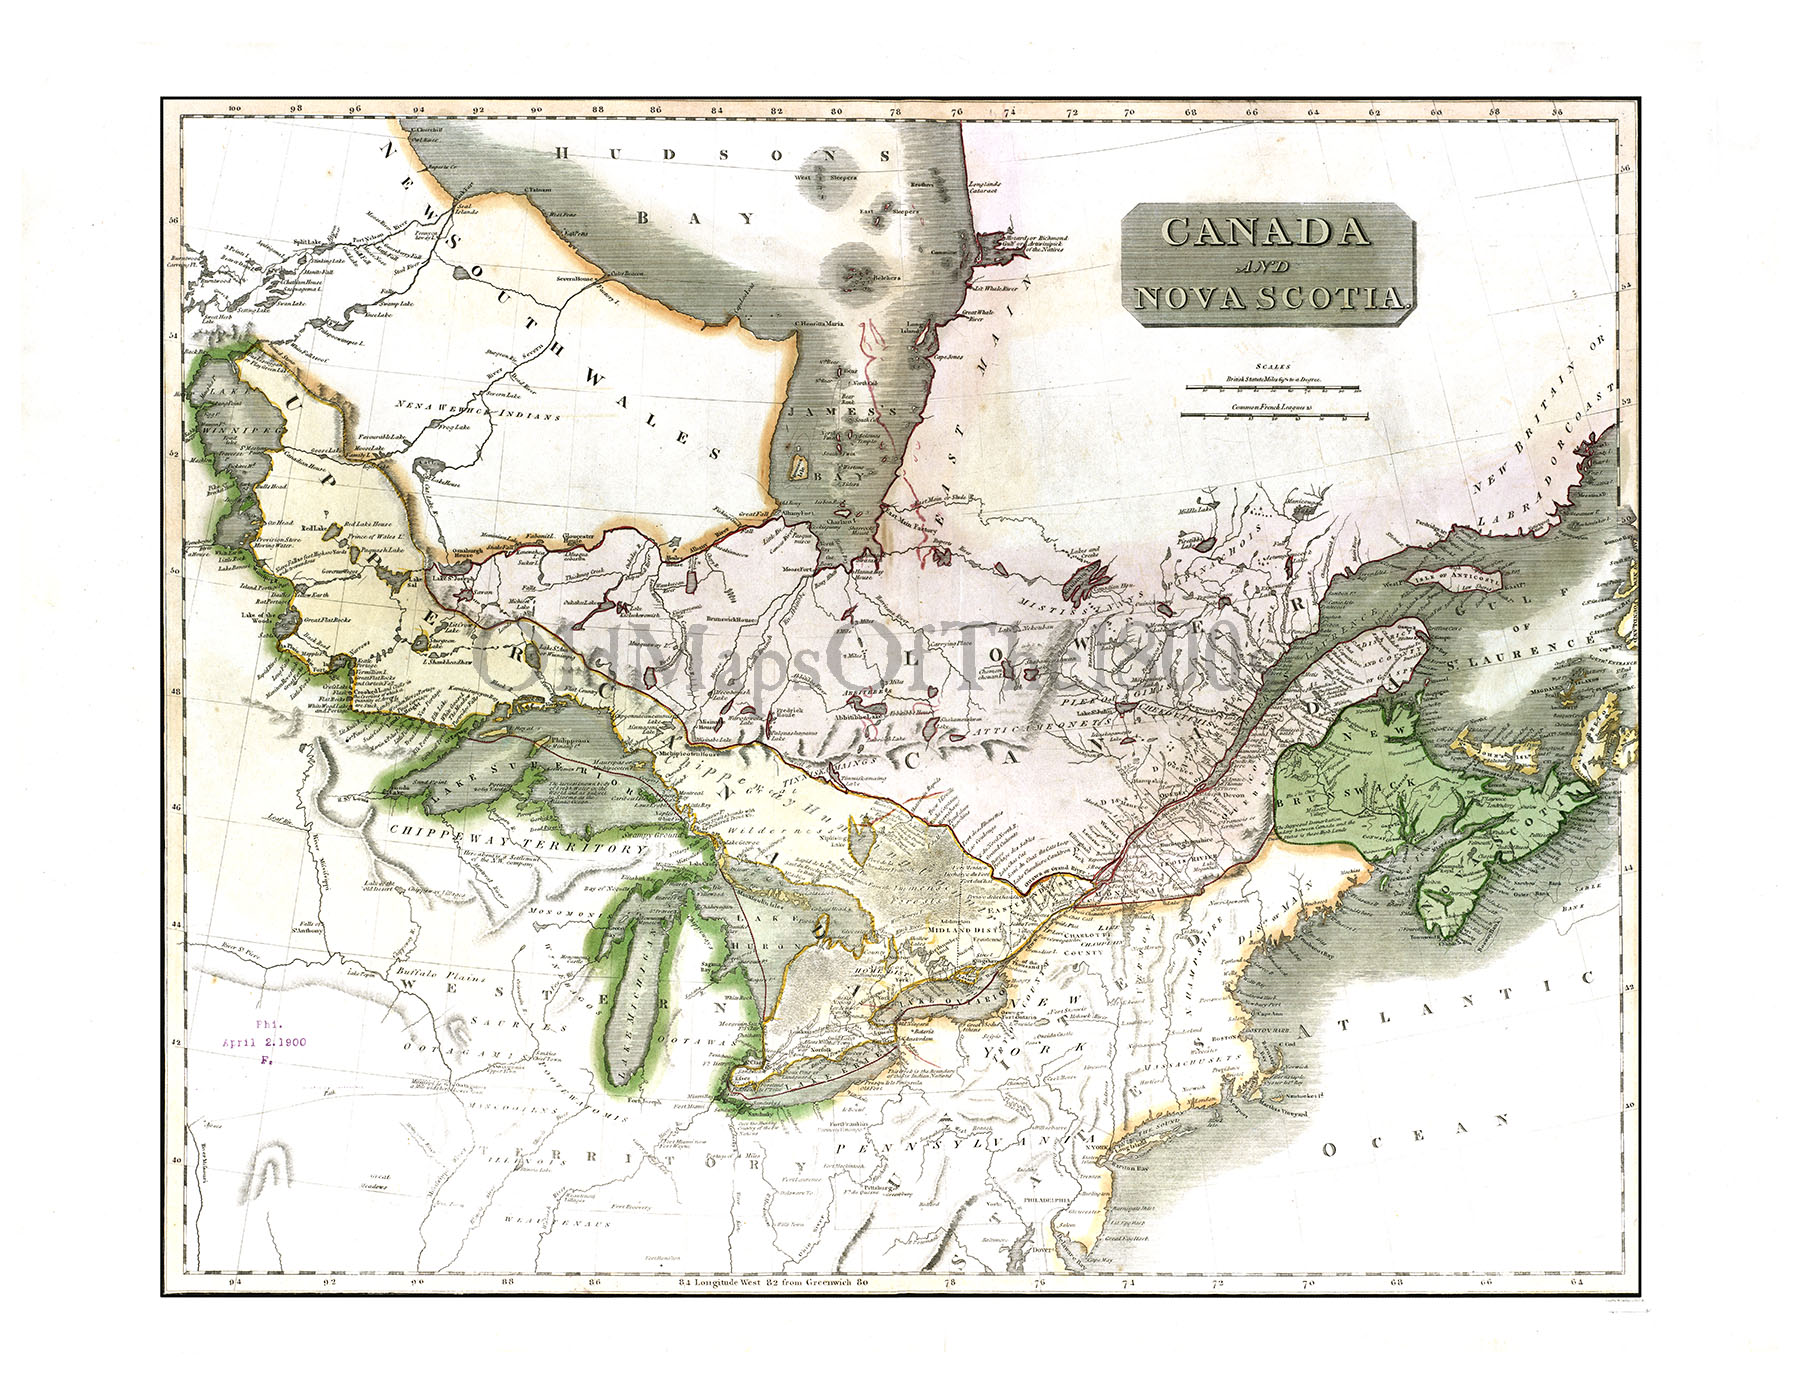 Canada and Nova Scotia in 1817 - Vintage map, Antique map, Reproduction,  Framable map, Fine Art, wall map, Great Lakes, Hudson Bay, Asia! from The  Old